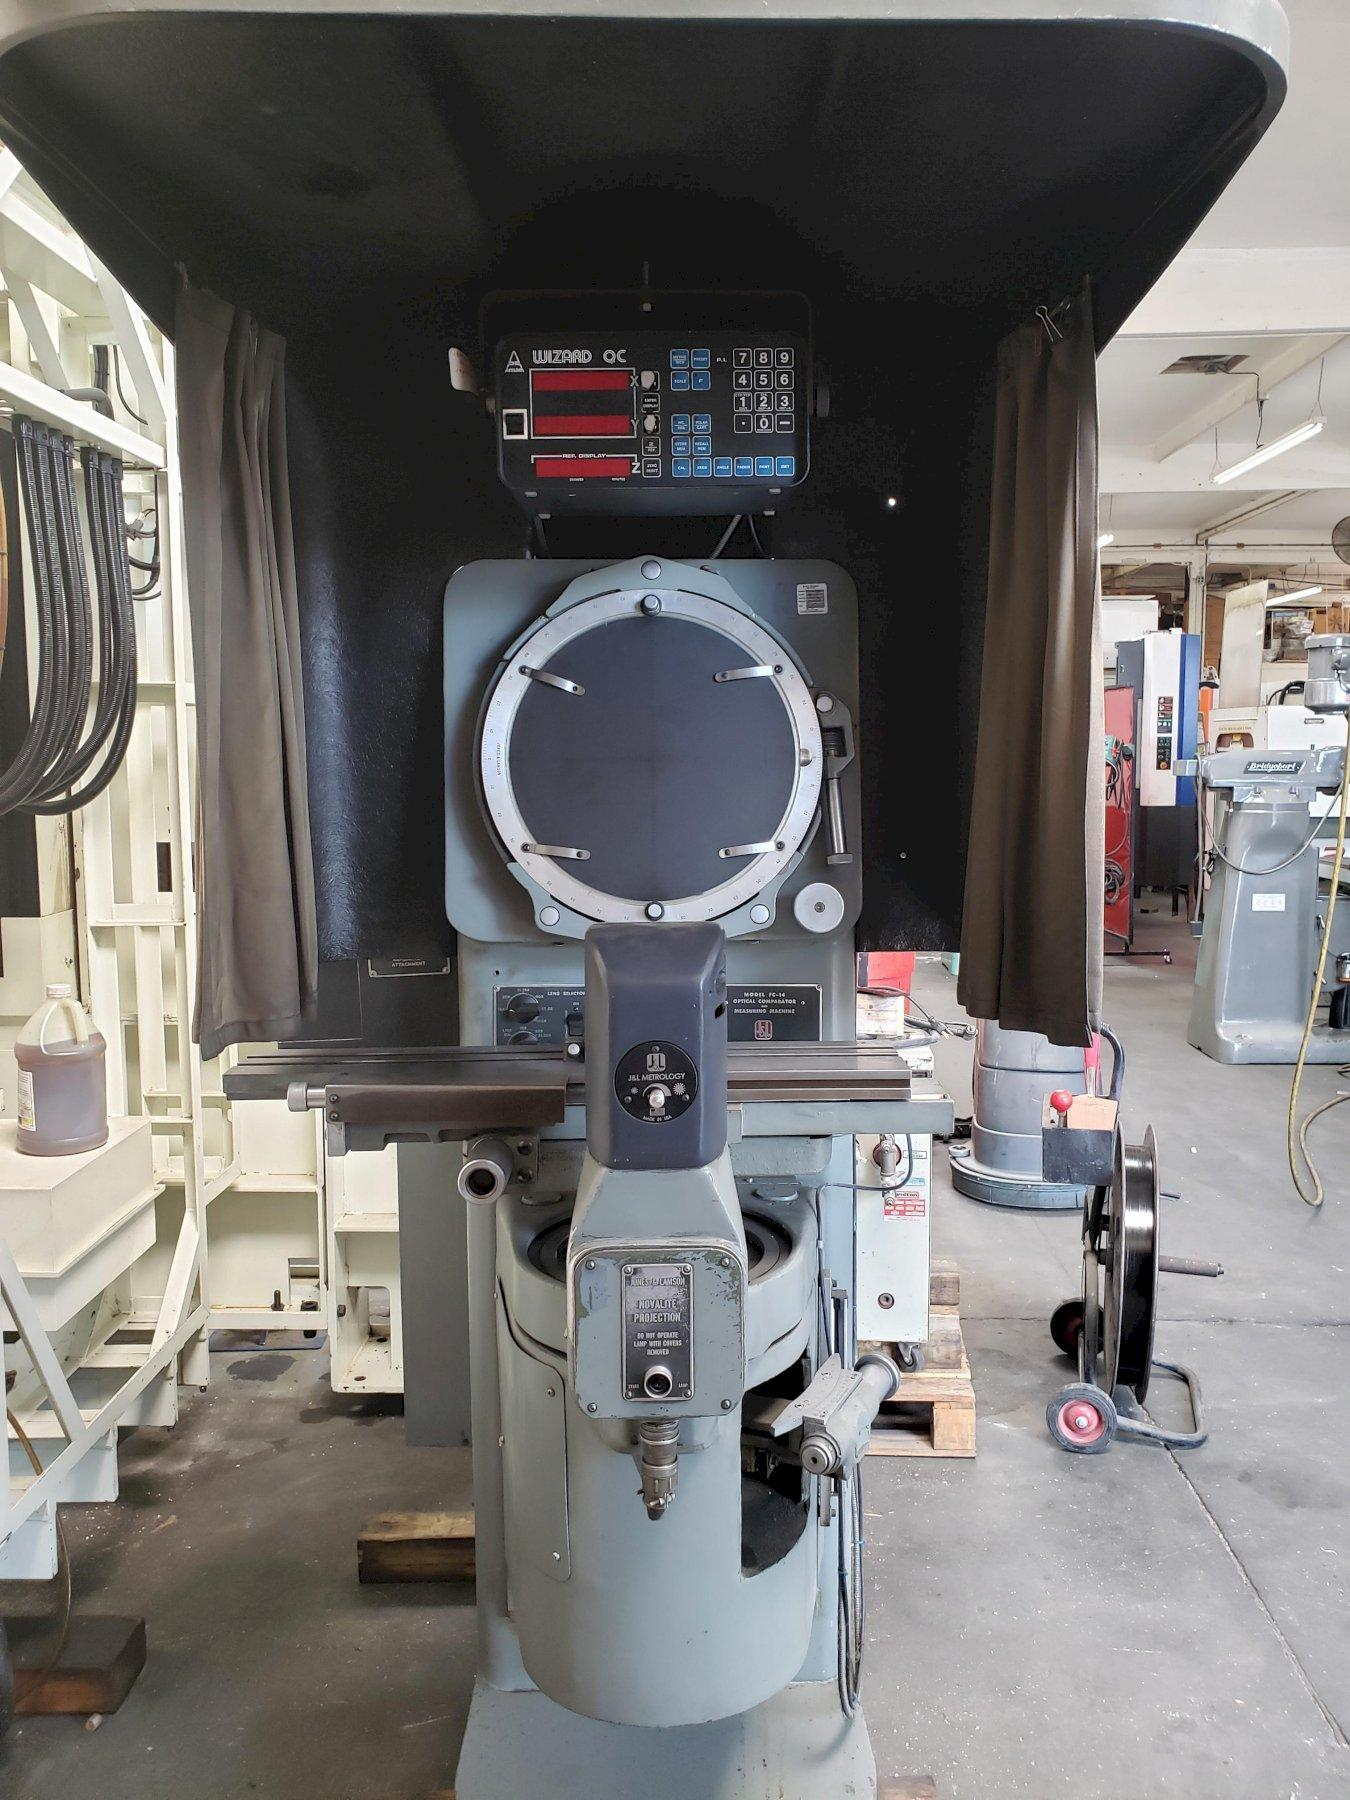 Jones & Lamson FC-14 Optical Comparator with Wizard QC DRO and Large Visor with Curtain.